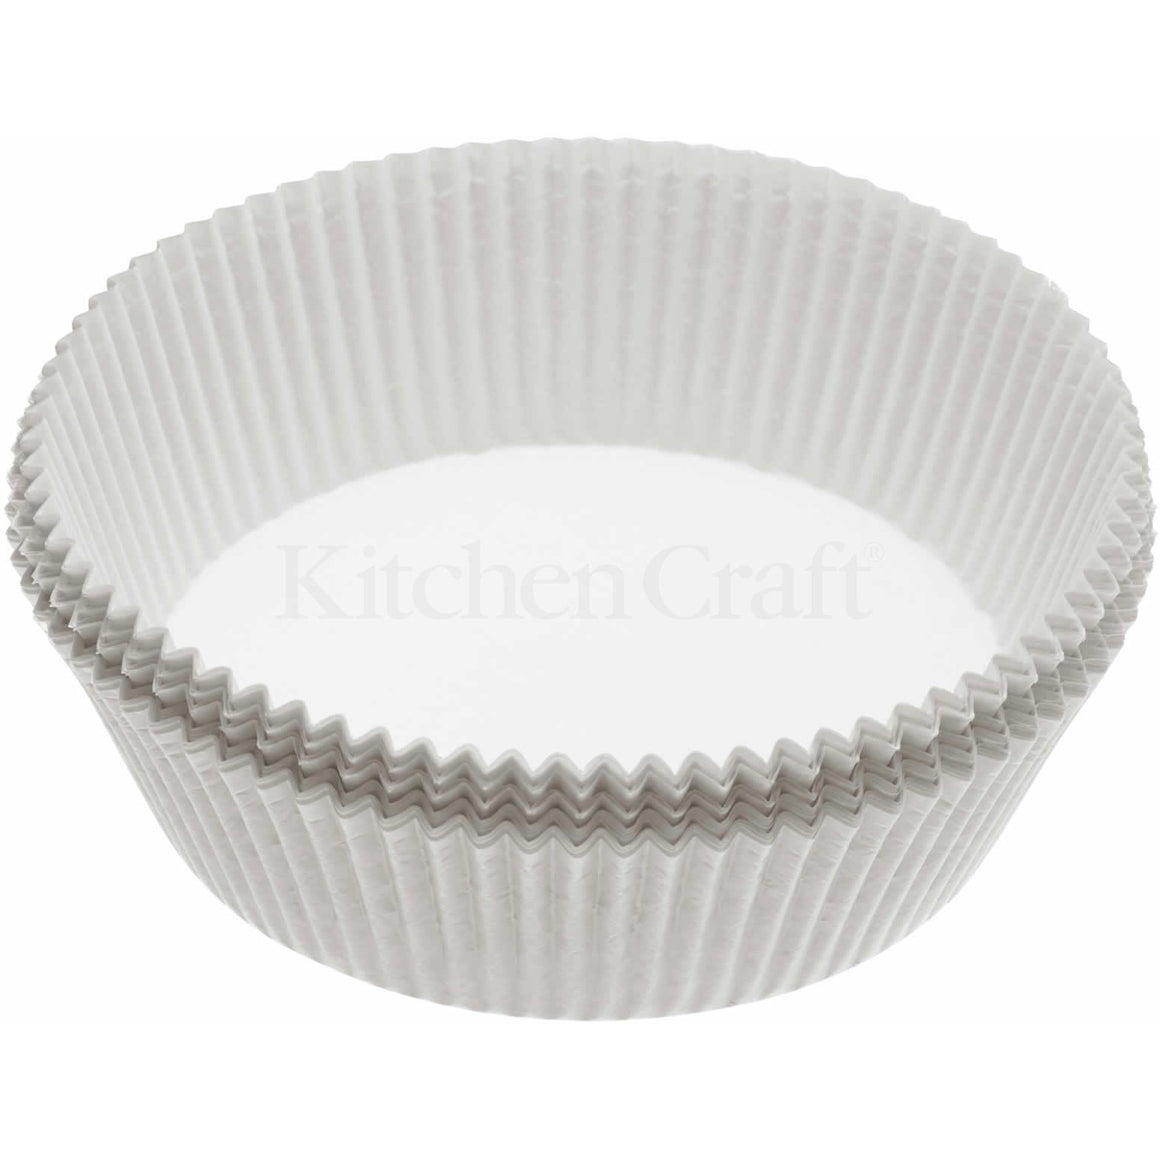 Kitchen Craft 8' Cake Liners